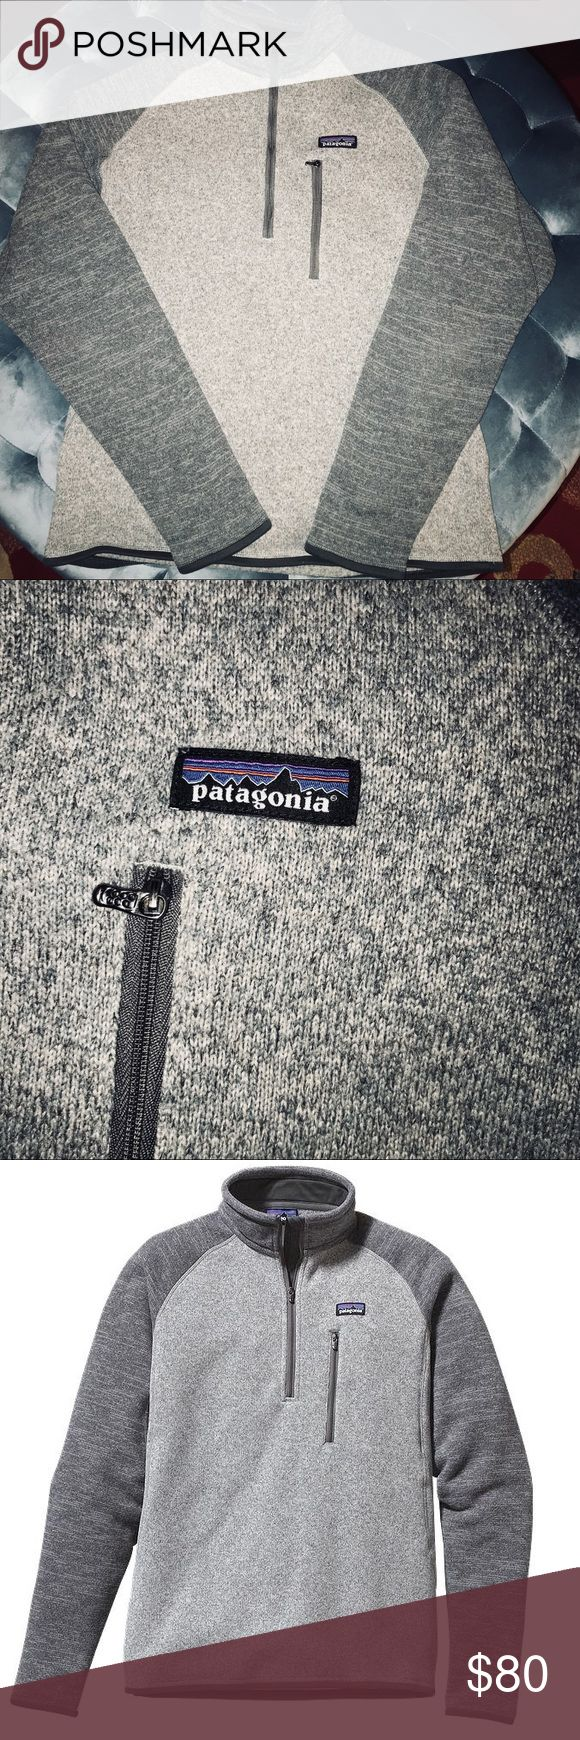 Men's Patagonia Better Sweater 1/4 Zip Fleece Sz M Great Condition Grey on Charcoal Better Sweater by Patagonia. Size is a Medium in men's comes with front pocket Zip. Light pilling on neck, other than that sweater is perfect and has been dry cleaned before sale. Retail is $100+ -All serious Offers considered!☺️ Patagonia Sweaters